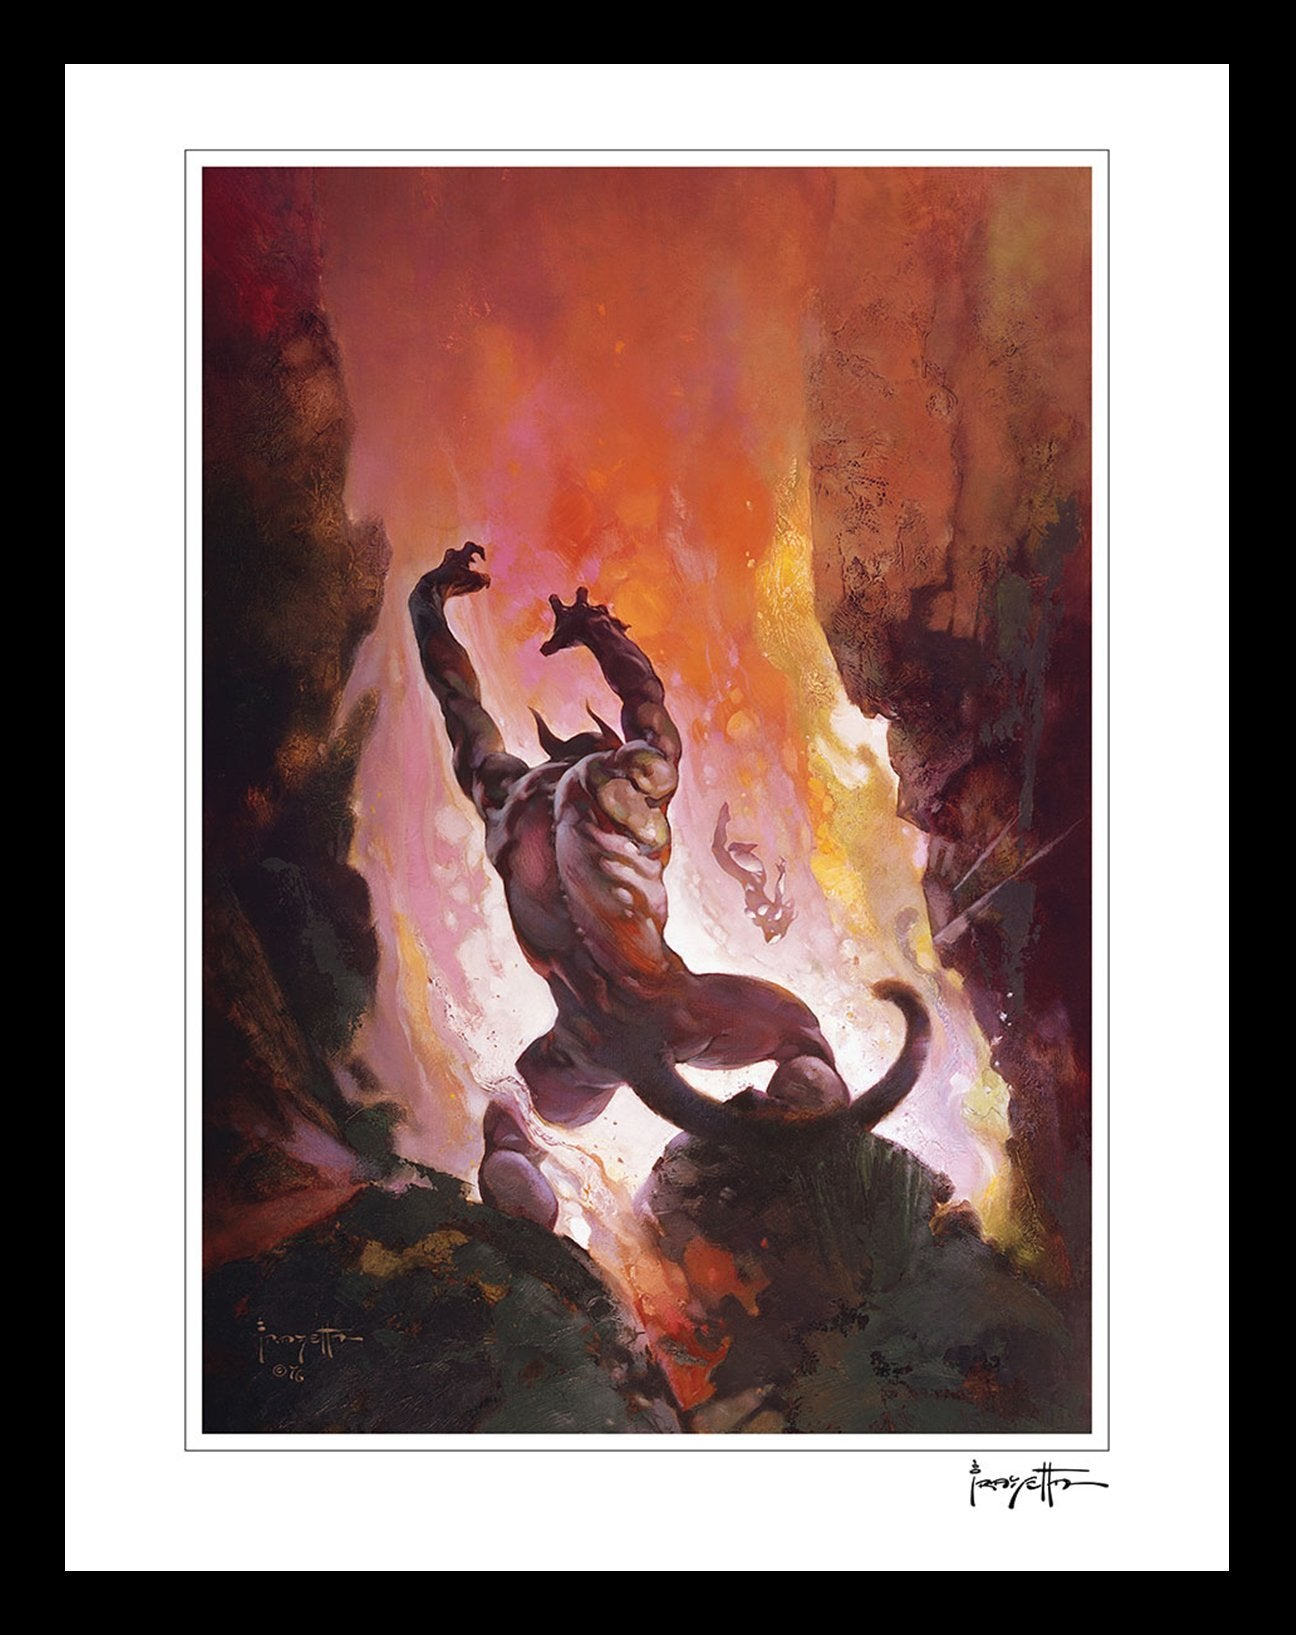 FrazettaGirls Art Print Framed print / Semi-matte photo print / 16x20 Fire Demon Print